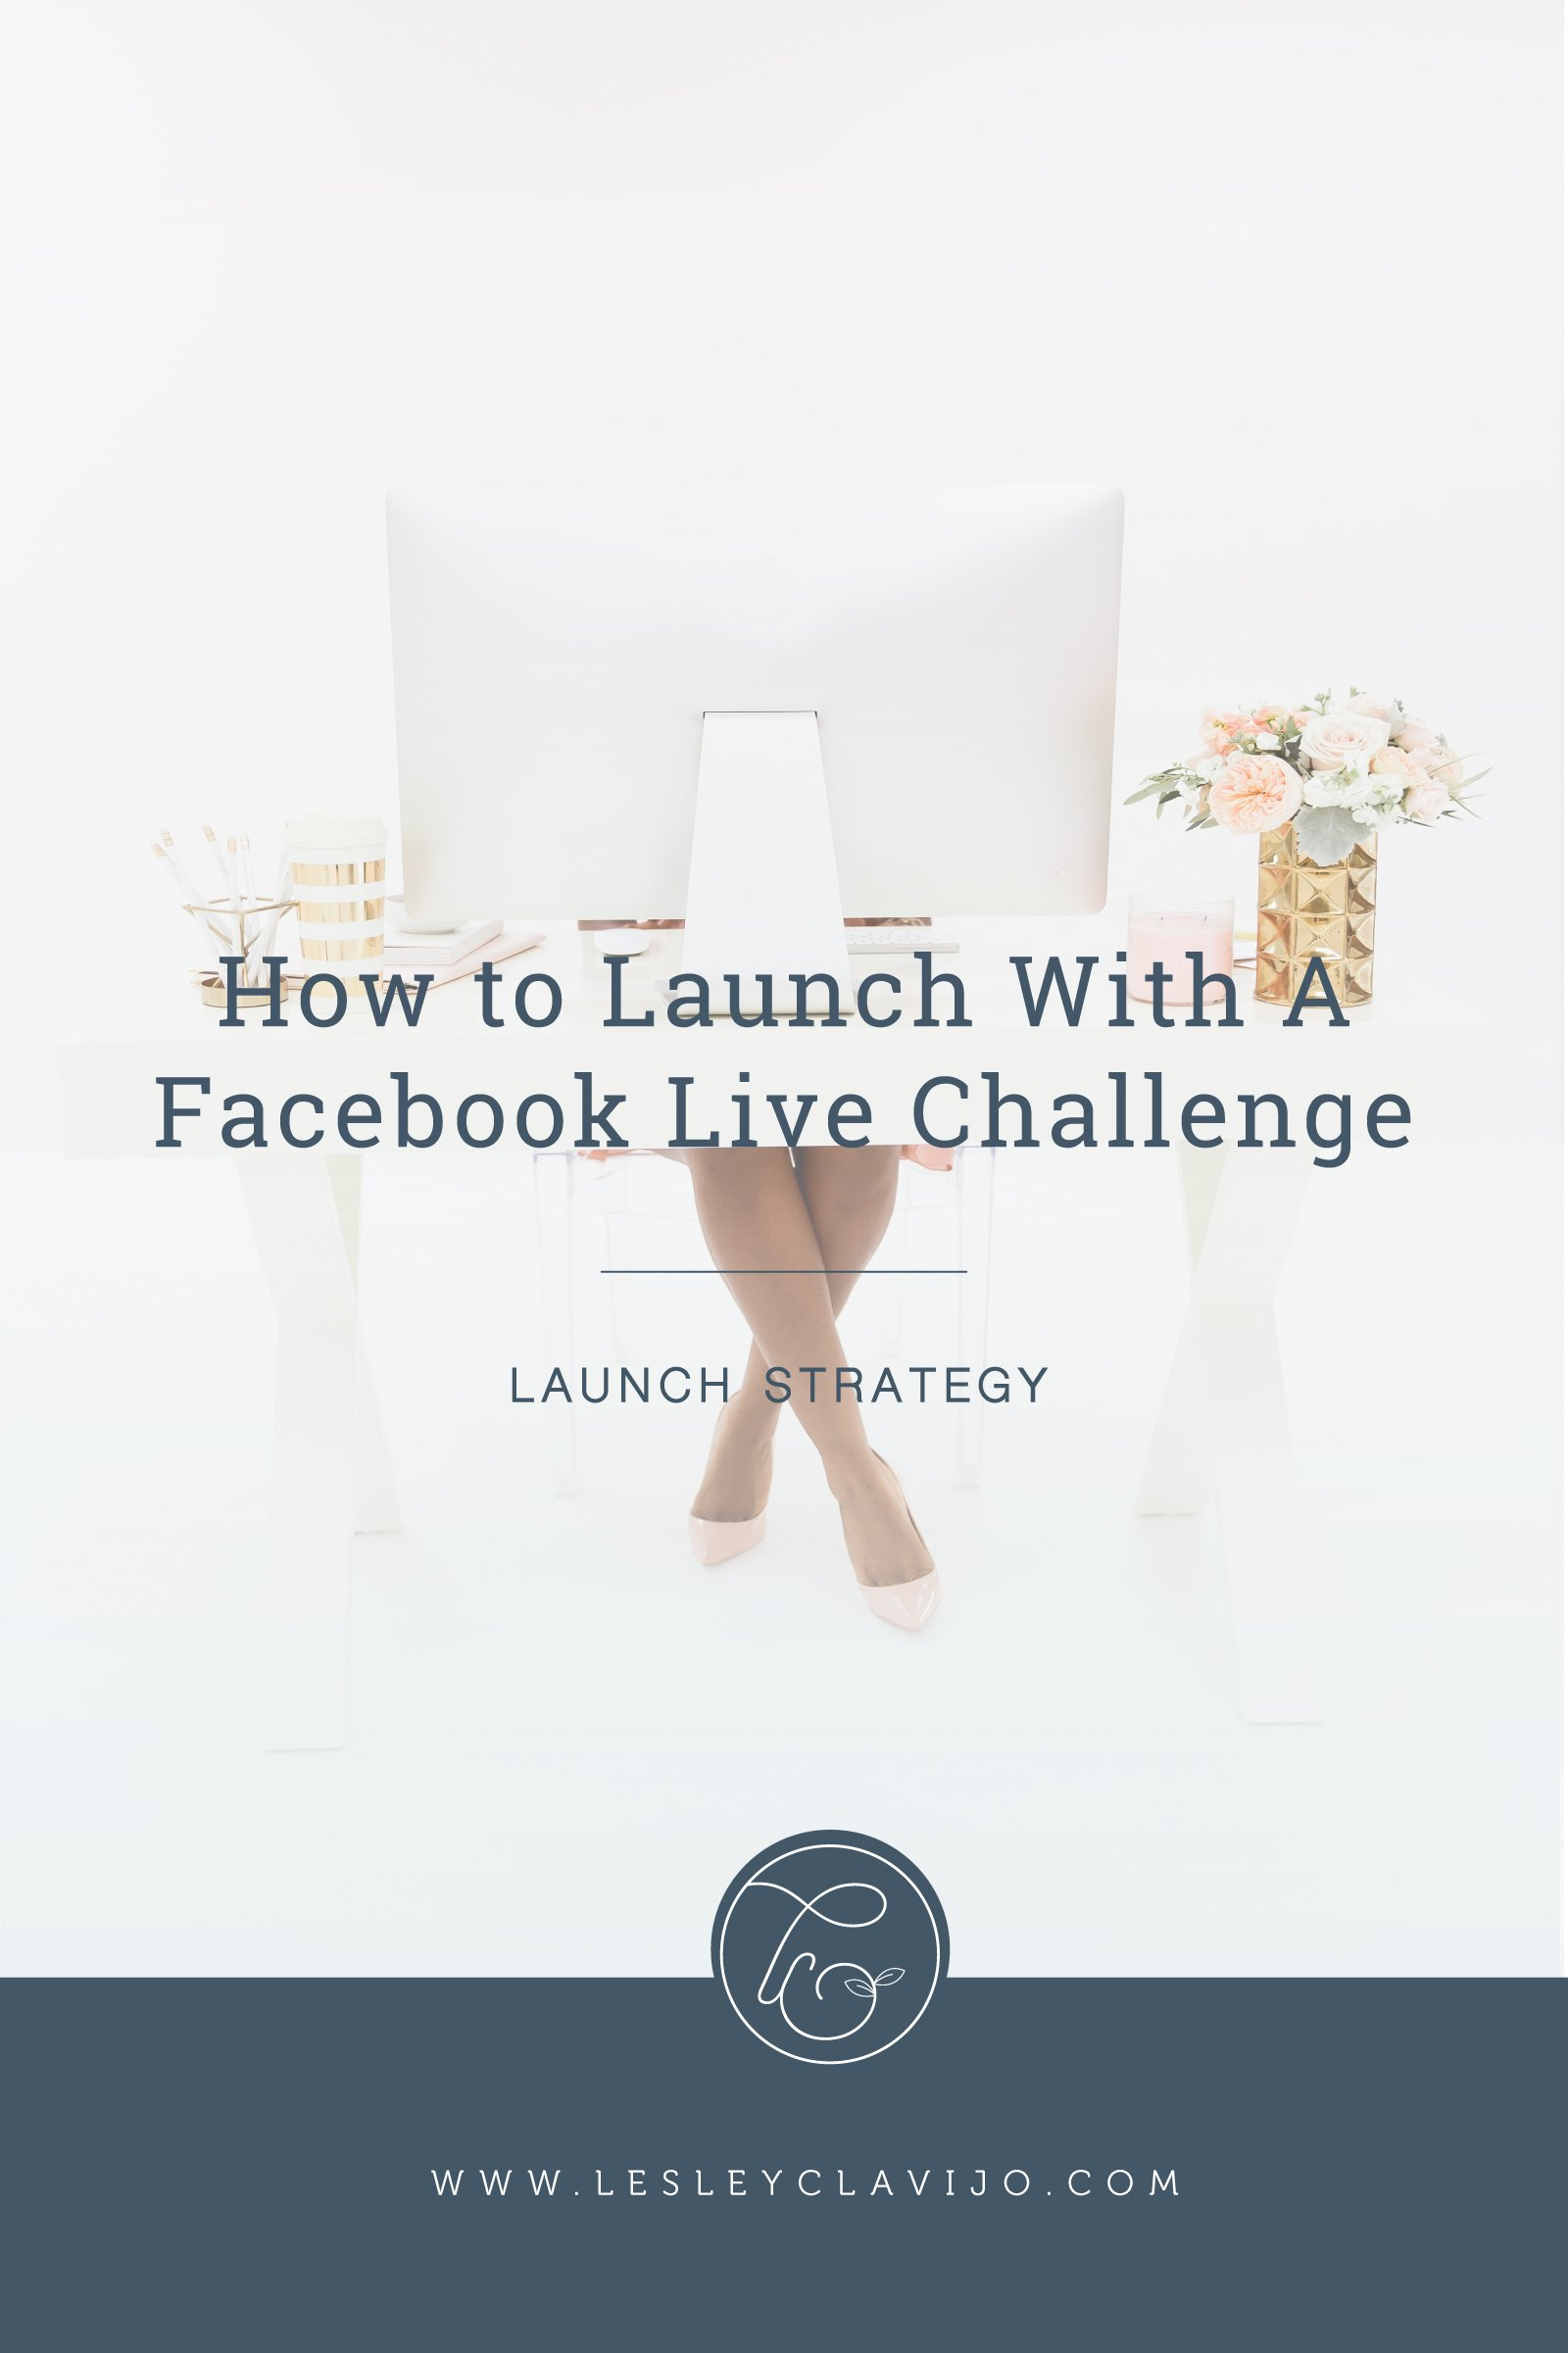 How to Launch with A Facebook Live Challenge #businesstips, #entrepreneurtips, #smallbusiness, #blogging #facebook #facebooklivetips